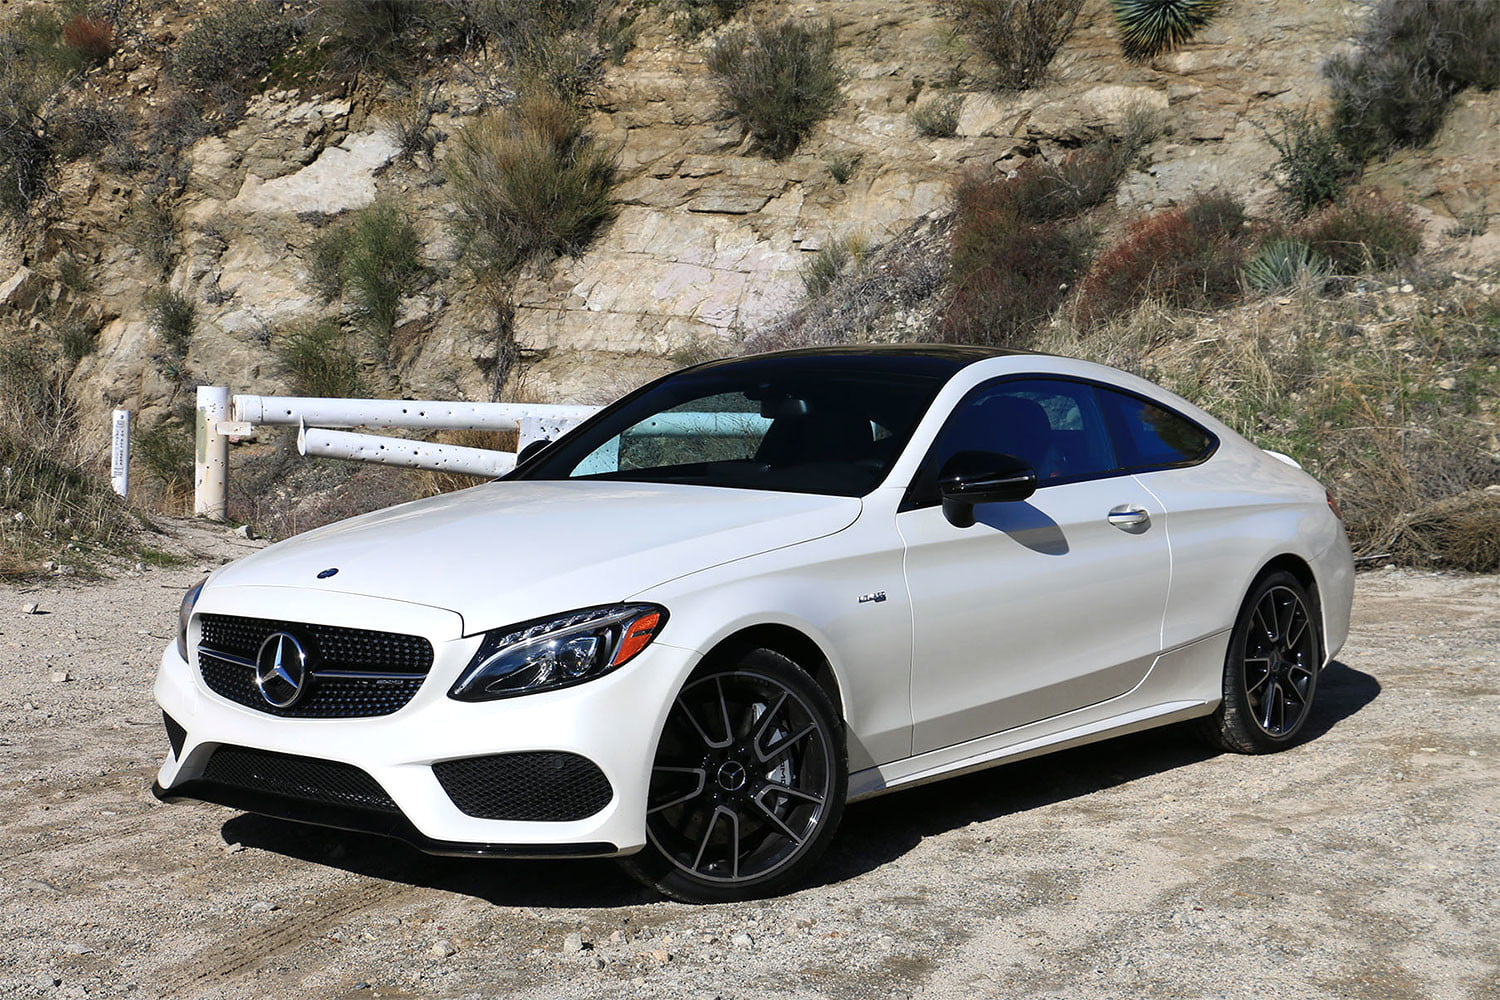 Mercedes C43 Amg Coupe >> 2017 Mercedes Amg C43 Coupe Review Turbocharged Torque Hits